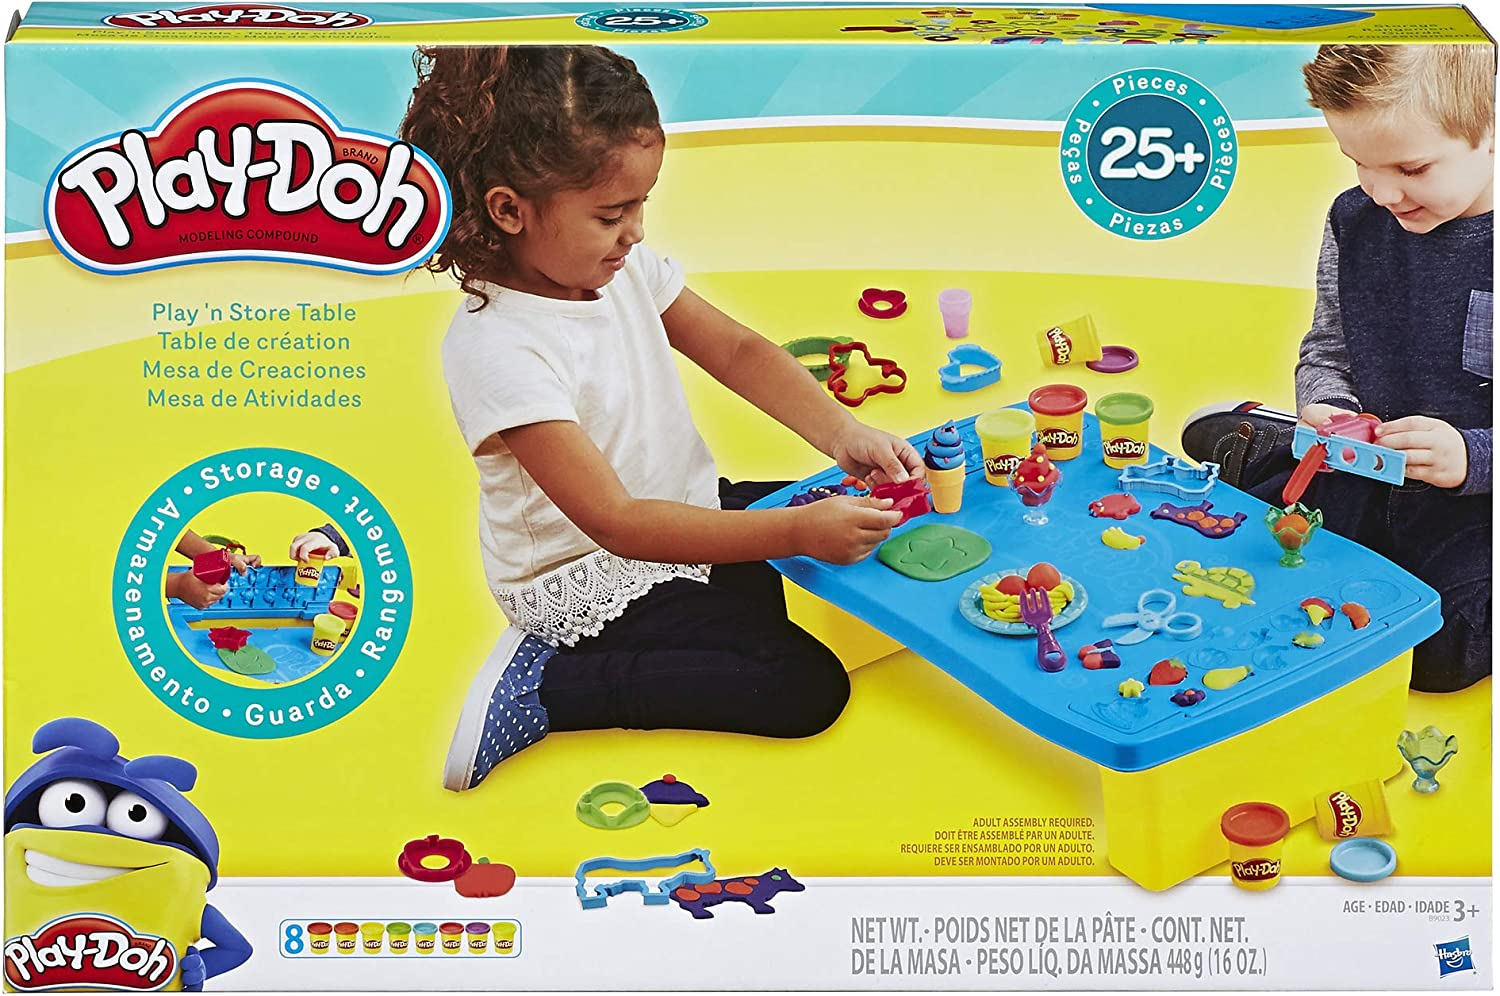 Play-Doh Play 'n Store Table, Arts & Crafts, Activity Table, Ages 3 and up(Amazon Exclusive)